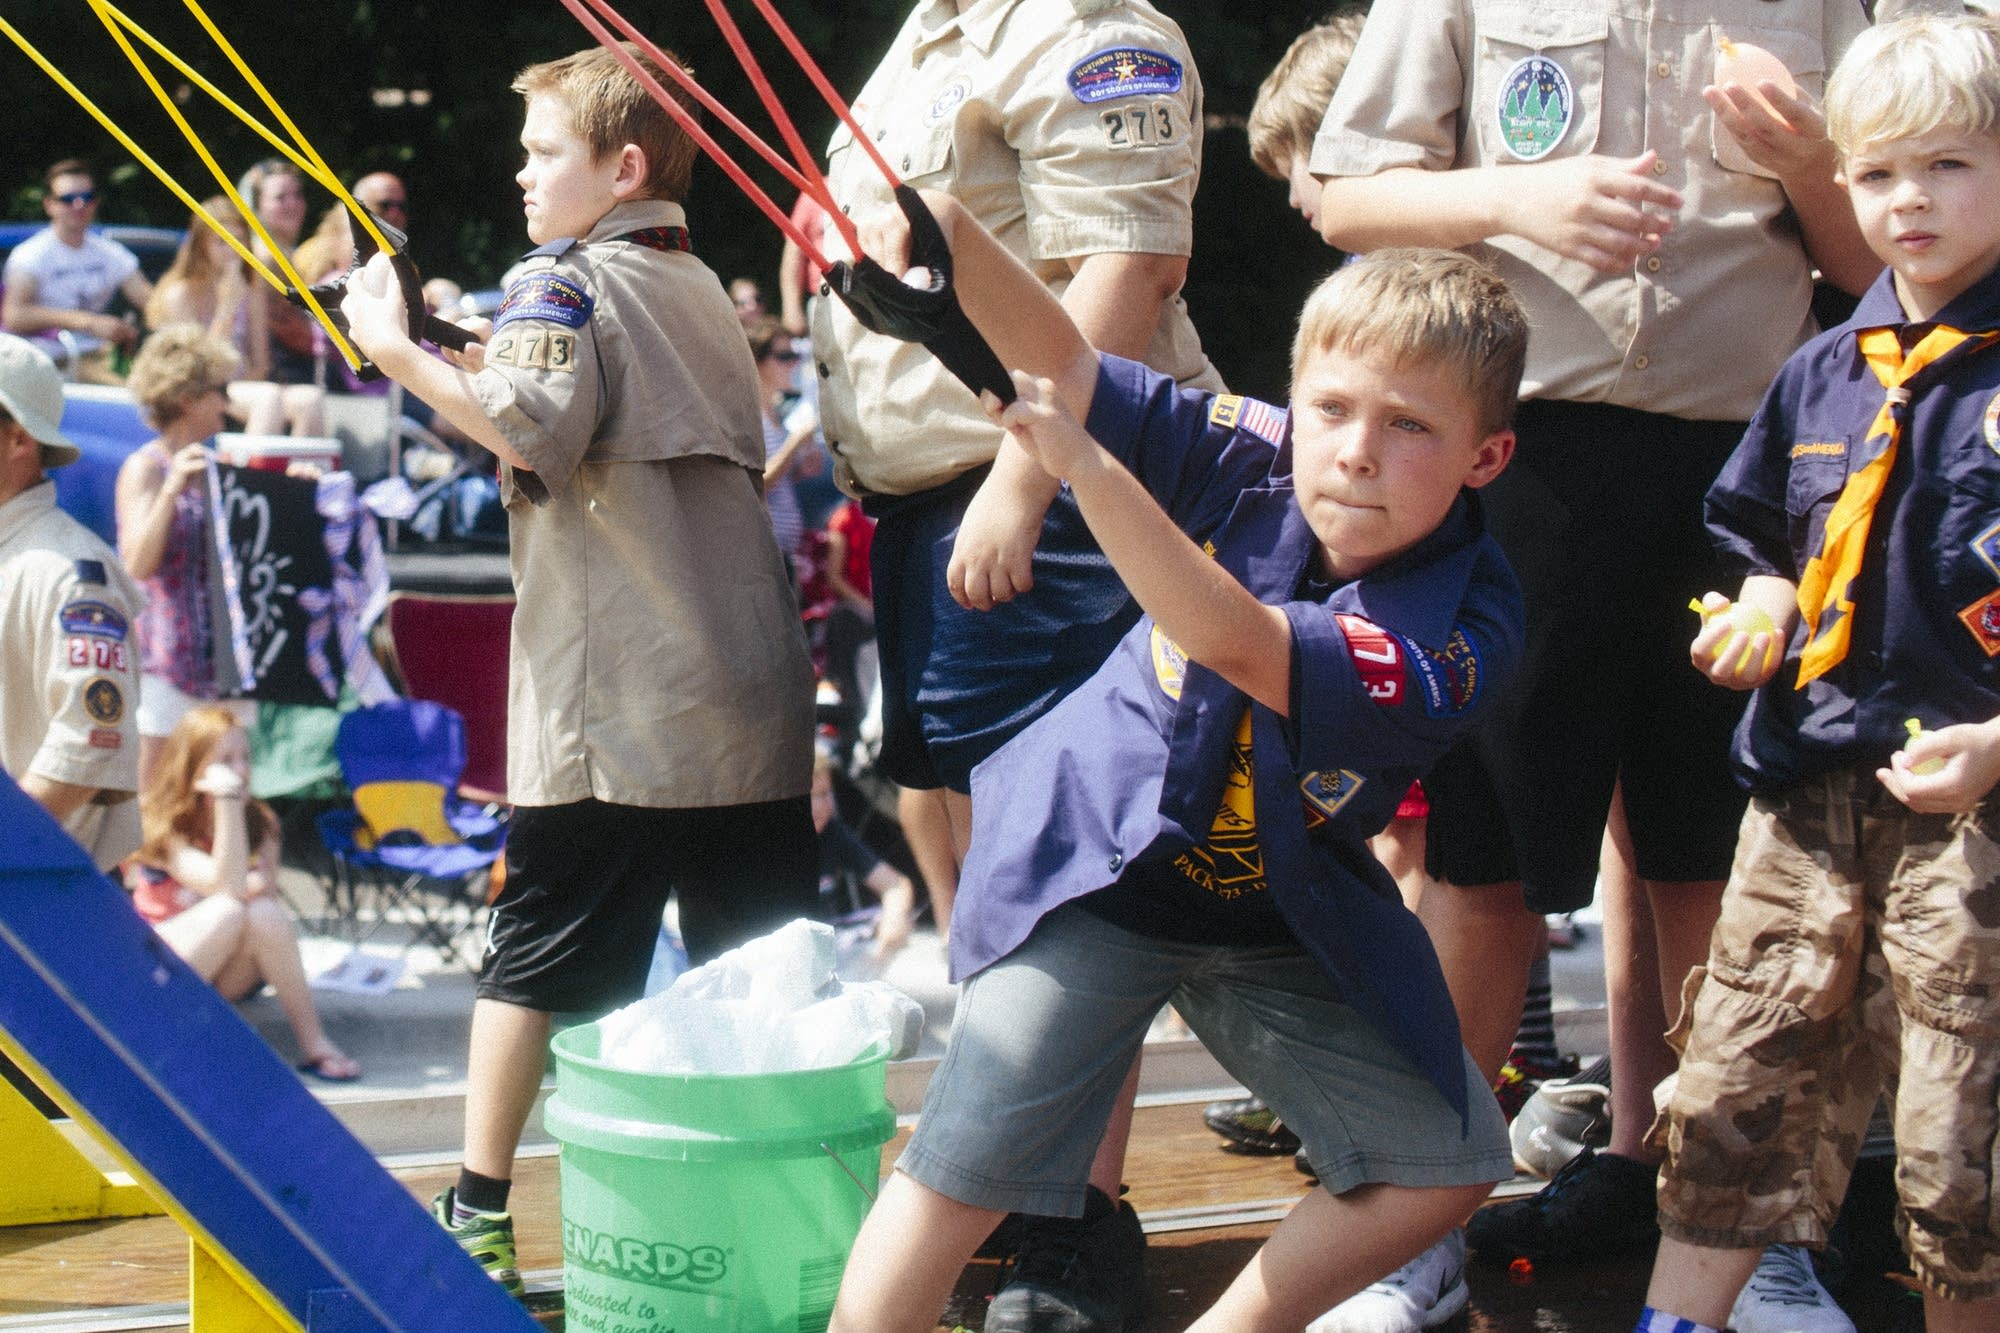 A Cub Scout from Pack 273 aims a water balloon.